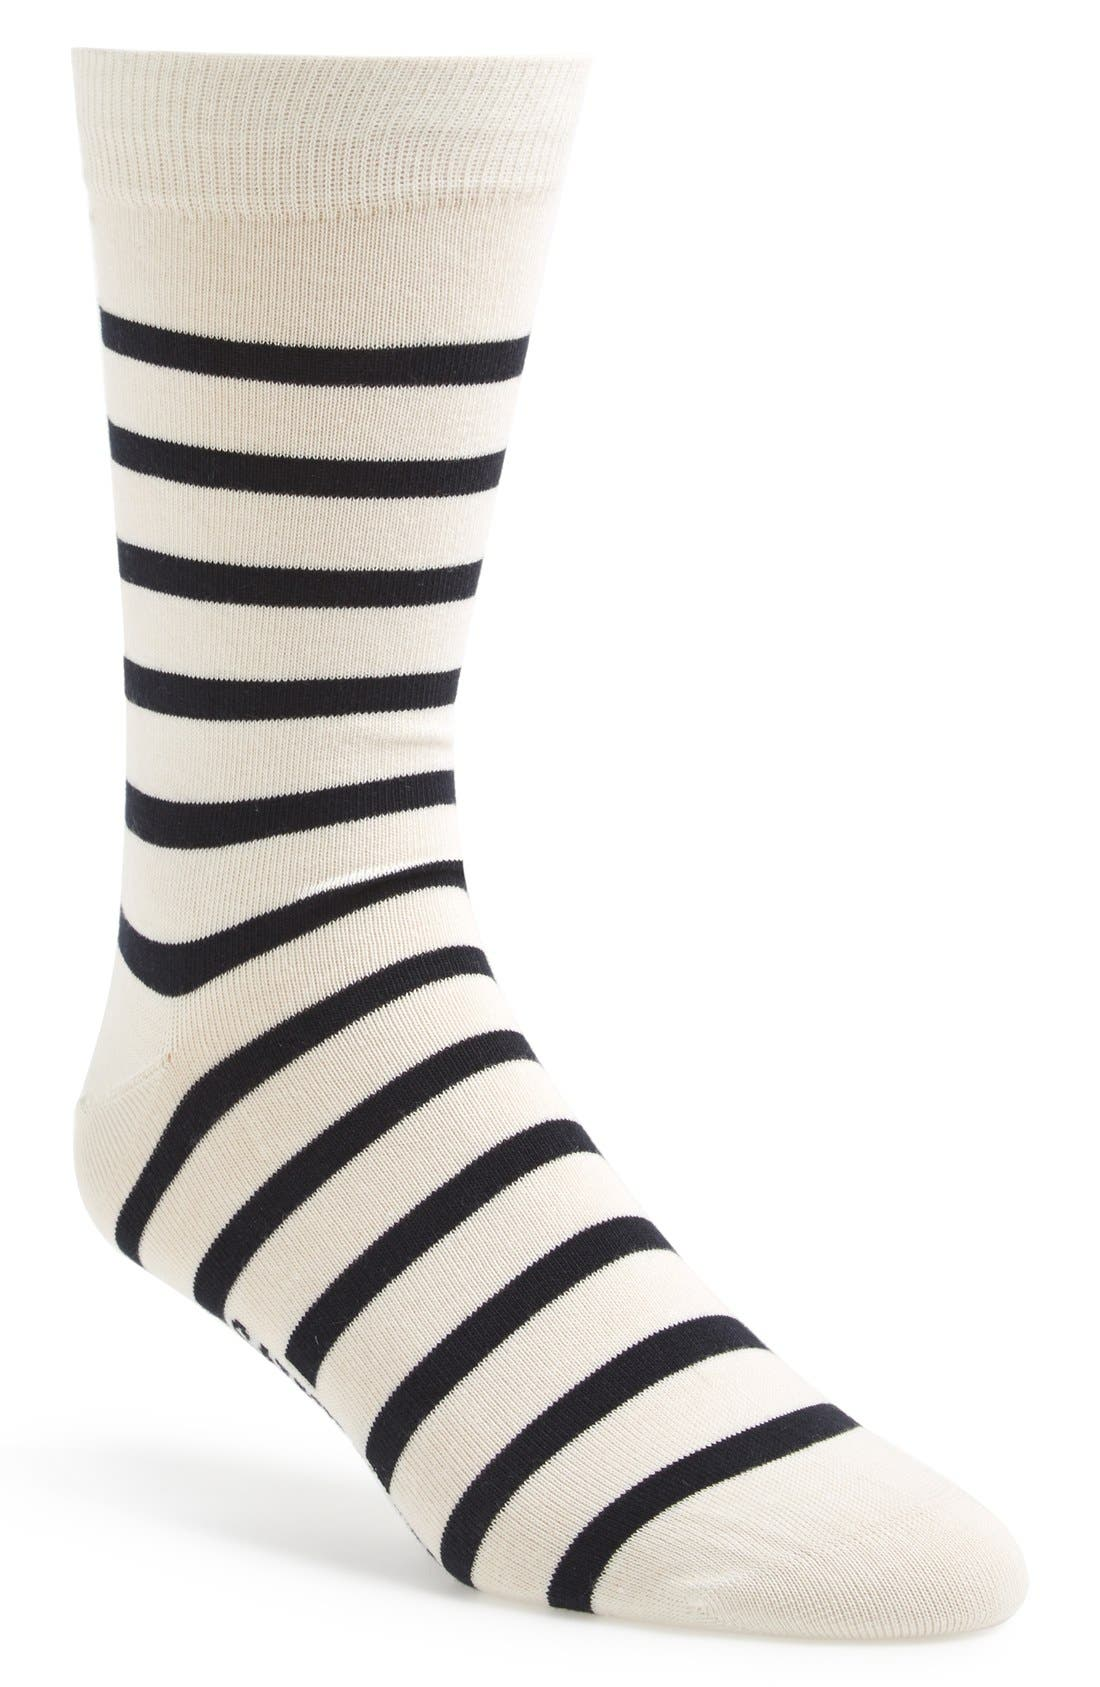 'Pieds Rayes A' Striped Socks,                             Main thumbnail 1, color,                             100